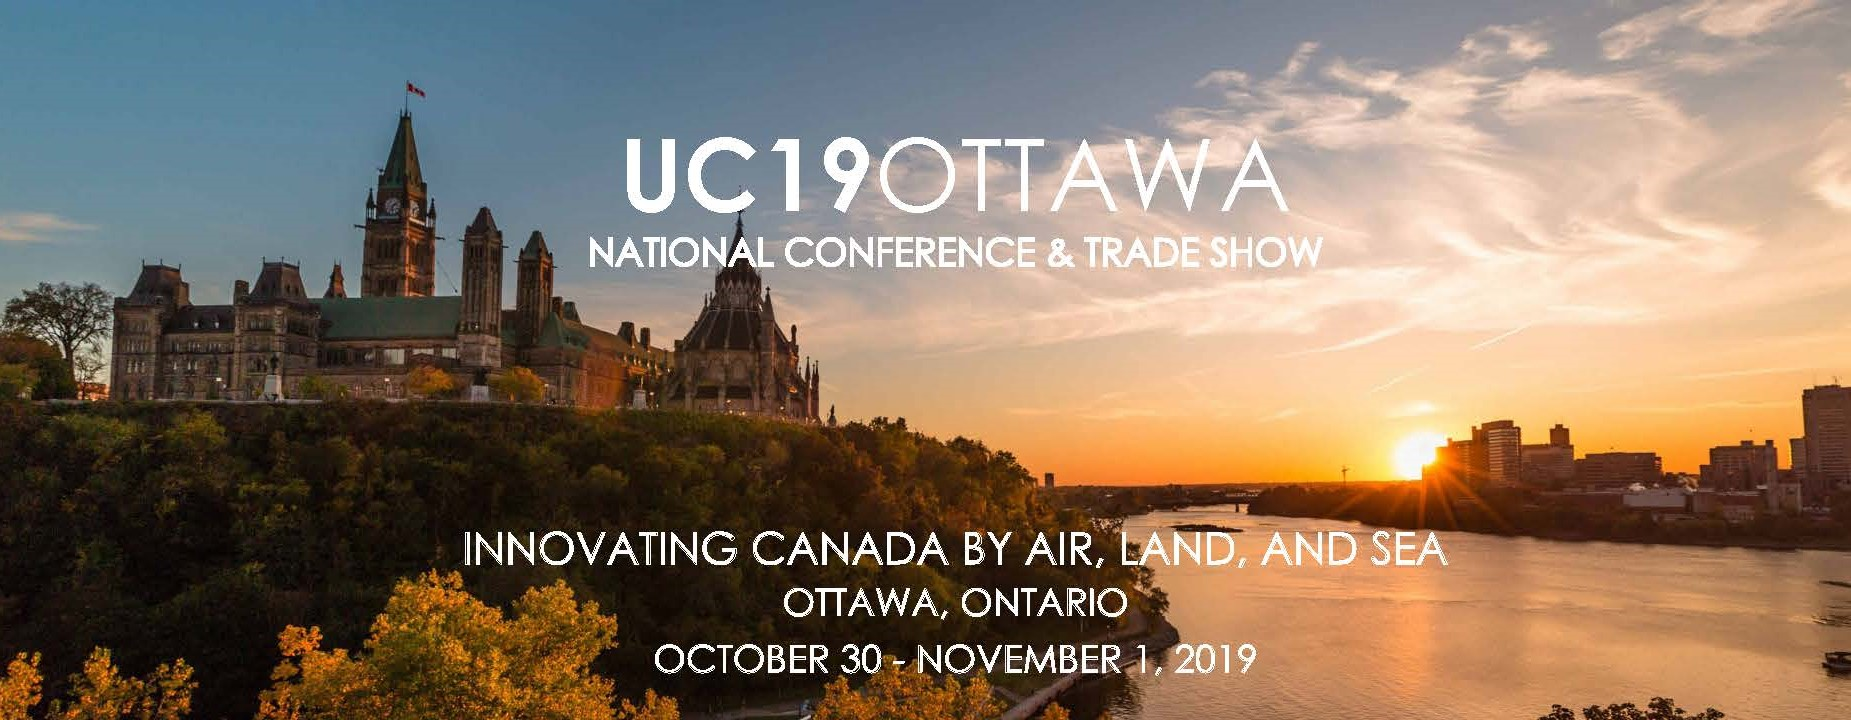 Unmanned Canada 2019 National Conference & Tradeshow